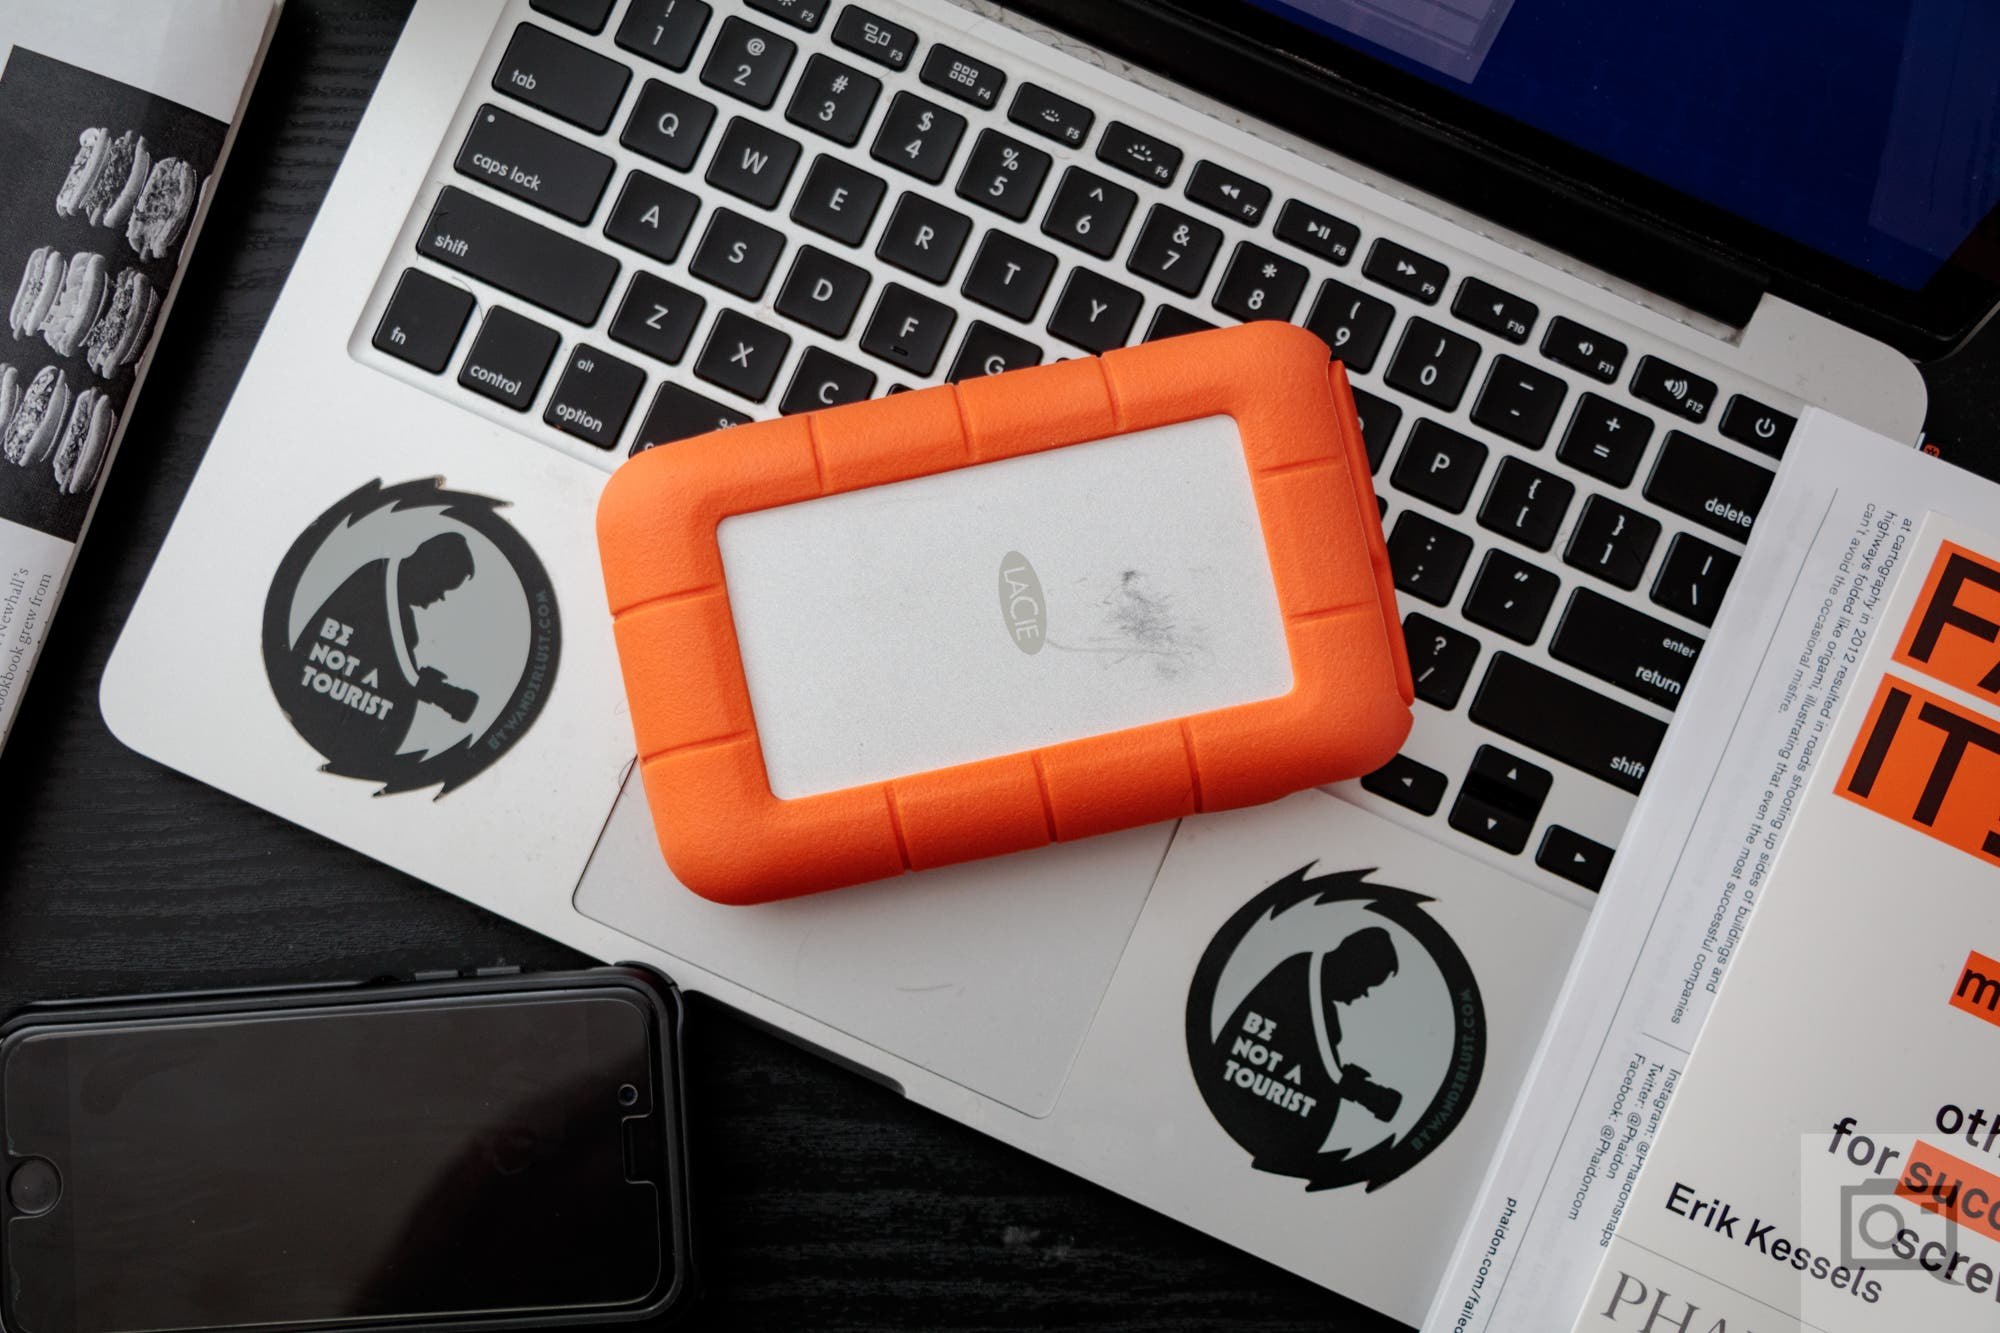 Review Lacie Rugged Raid Thunderbolt 4tb Hard Drive